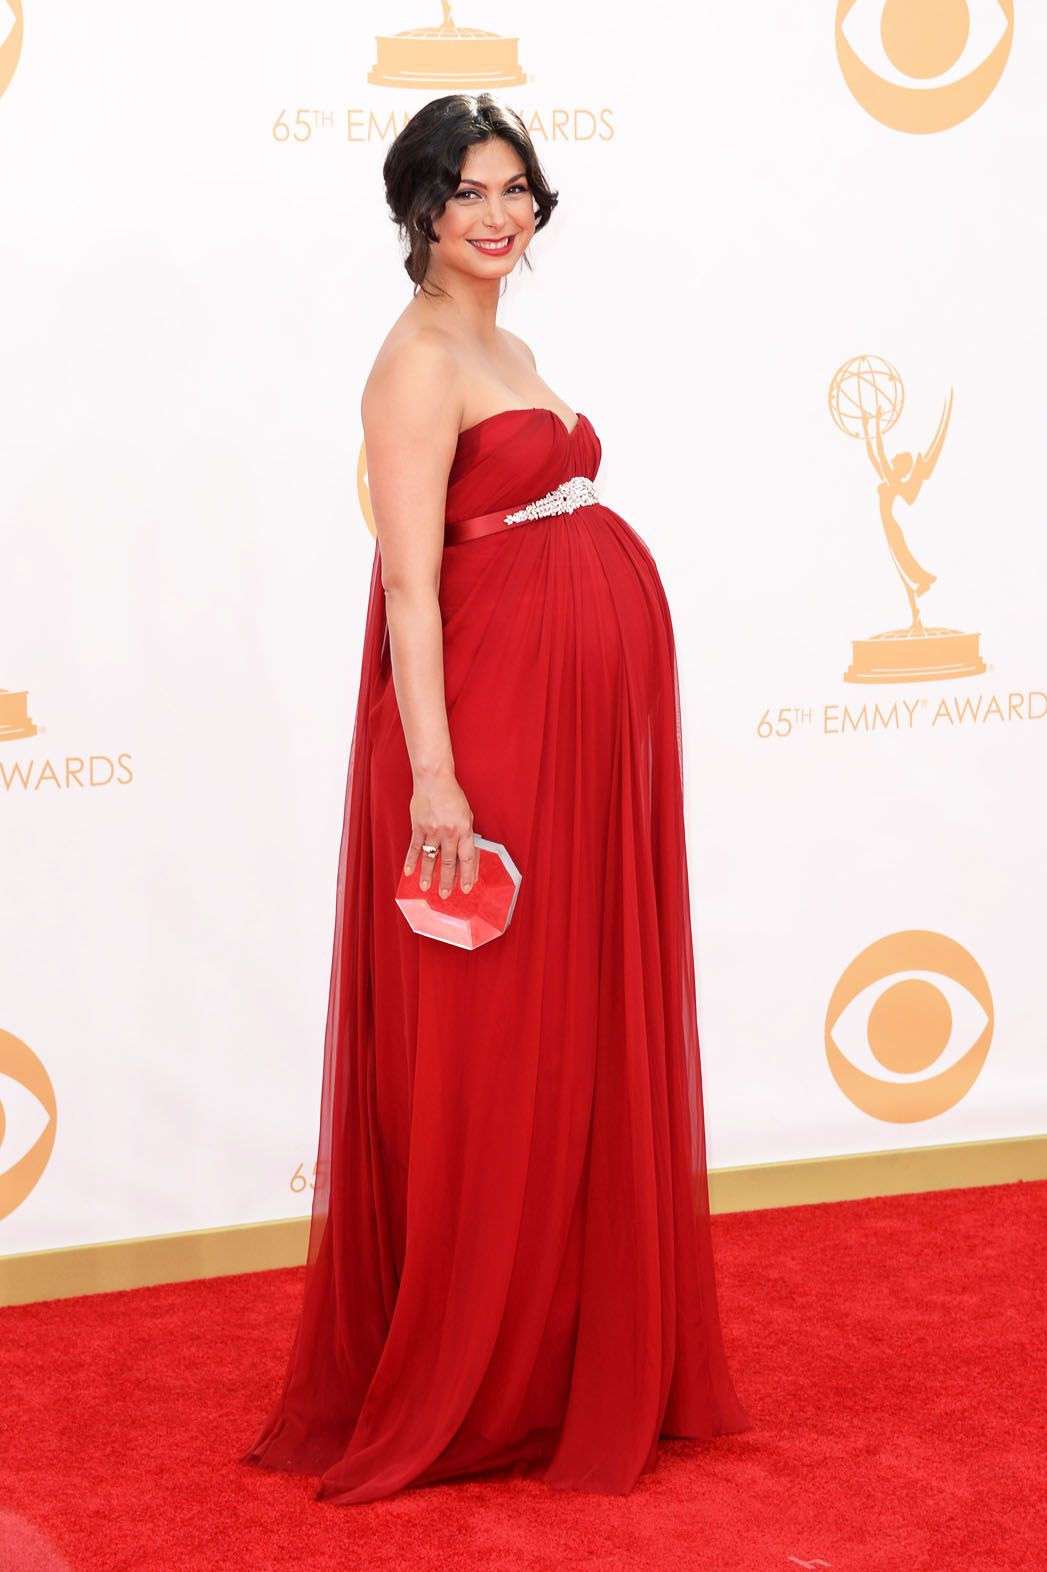 Morena Baccarin The pregnant Homeland actress showed off her curves in a strapless red gown with a diamond belt, accessorized with Fred Leig...